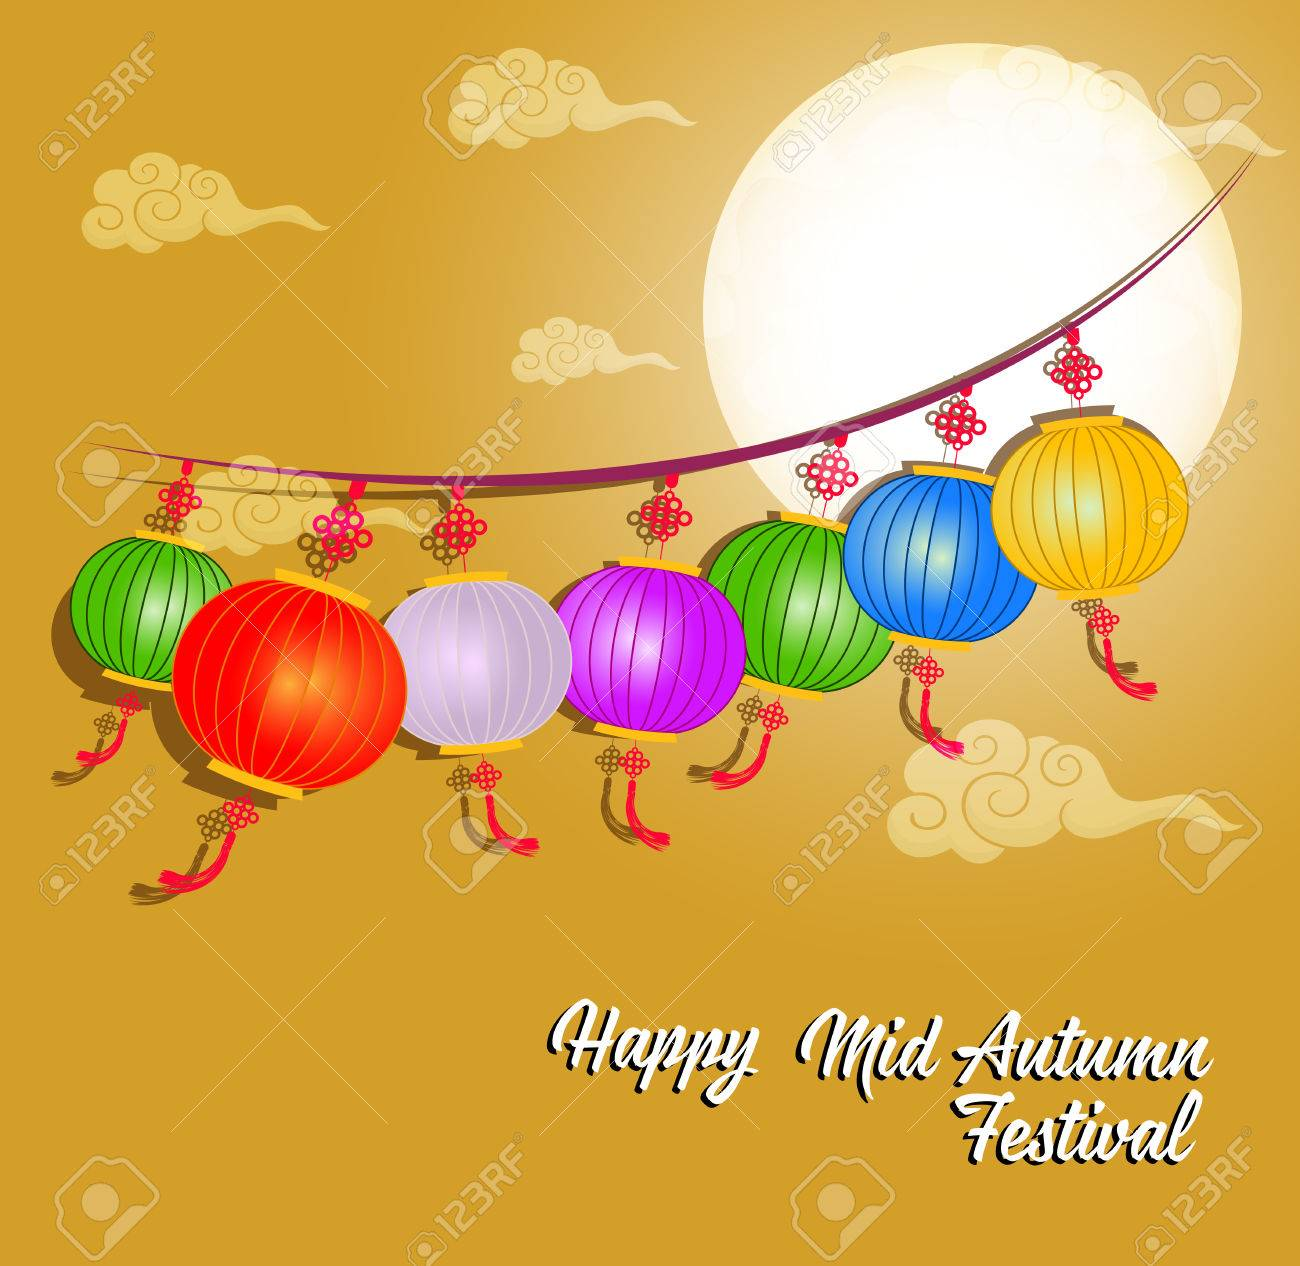 72362b868 Traditional background for traditions of Chinese Mid Autumn Festival or Lantern  Festival Stock Vector - 83078972